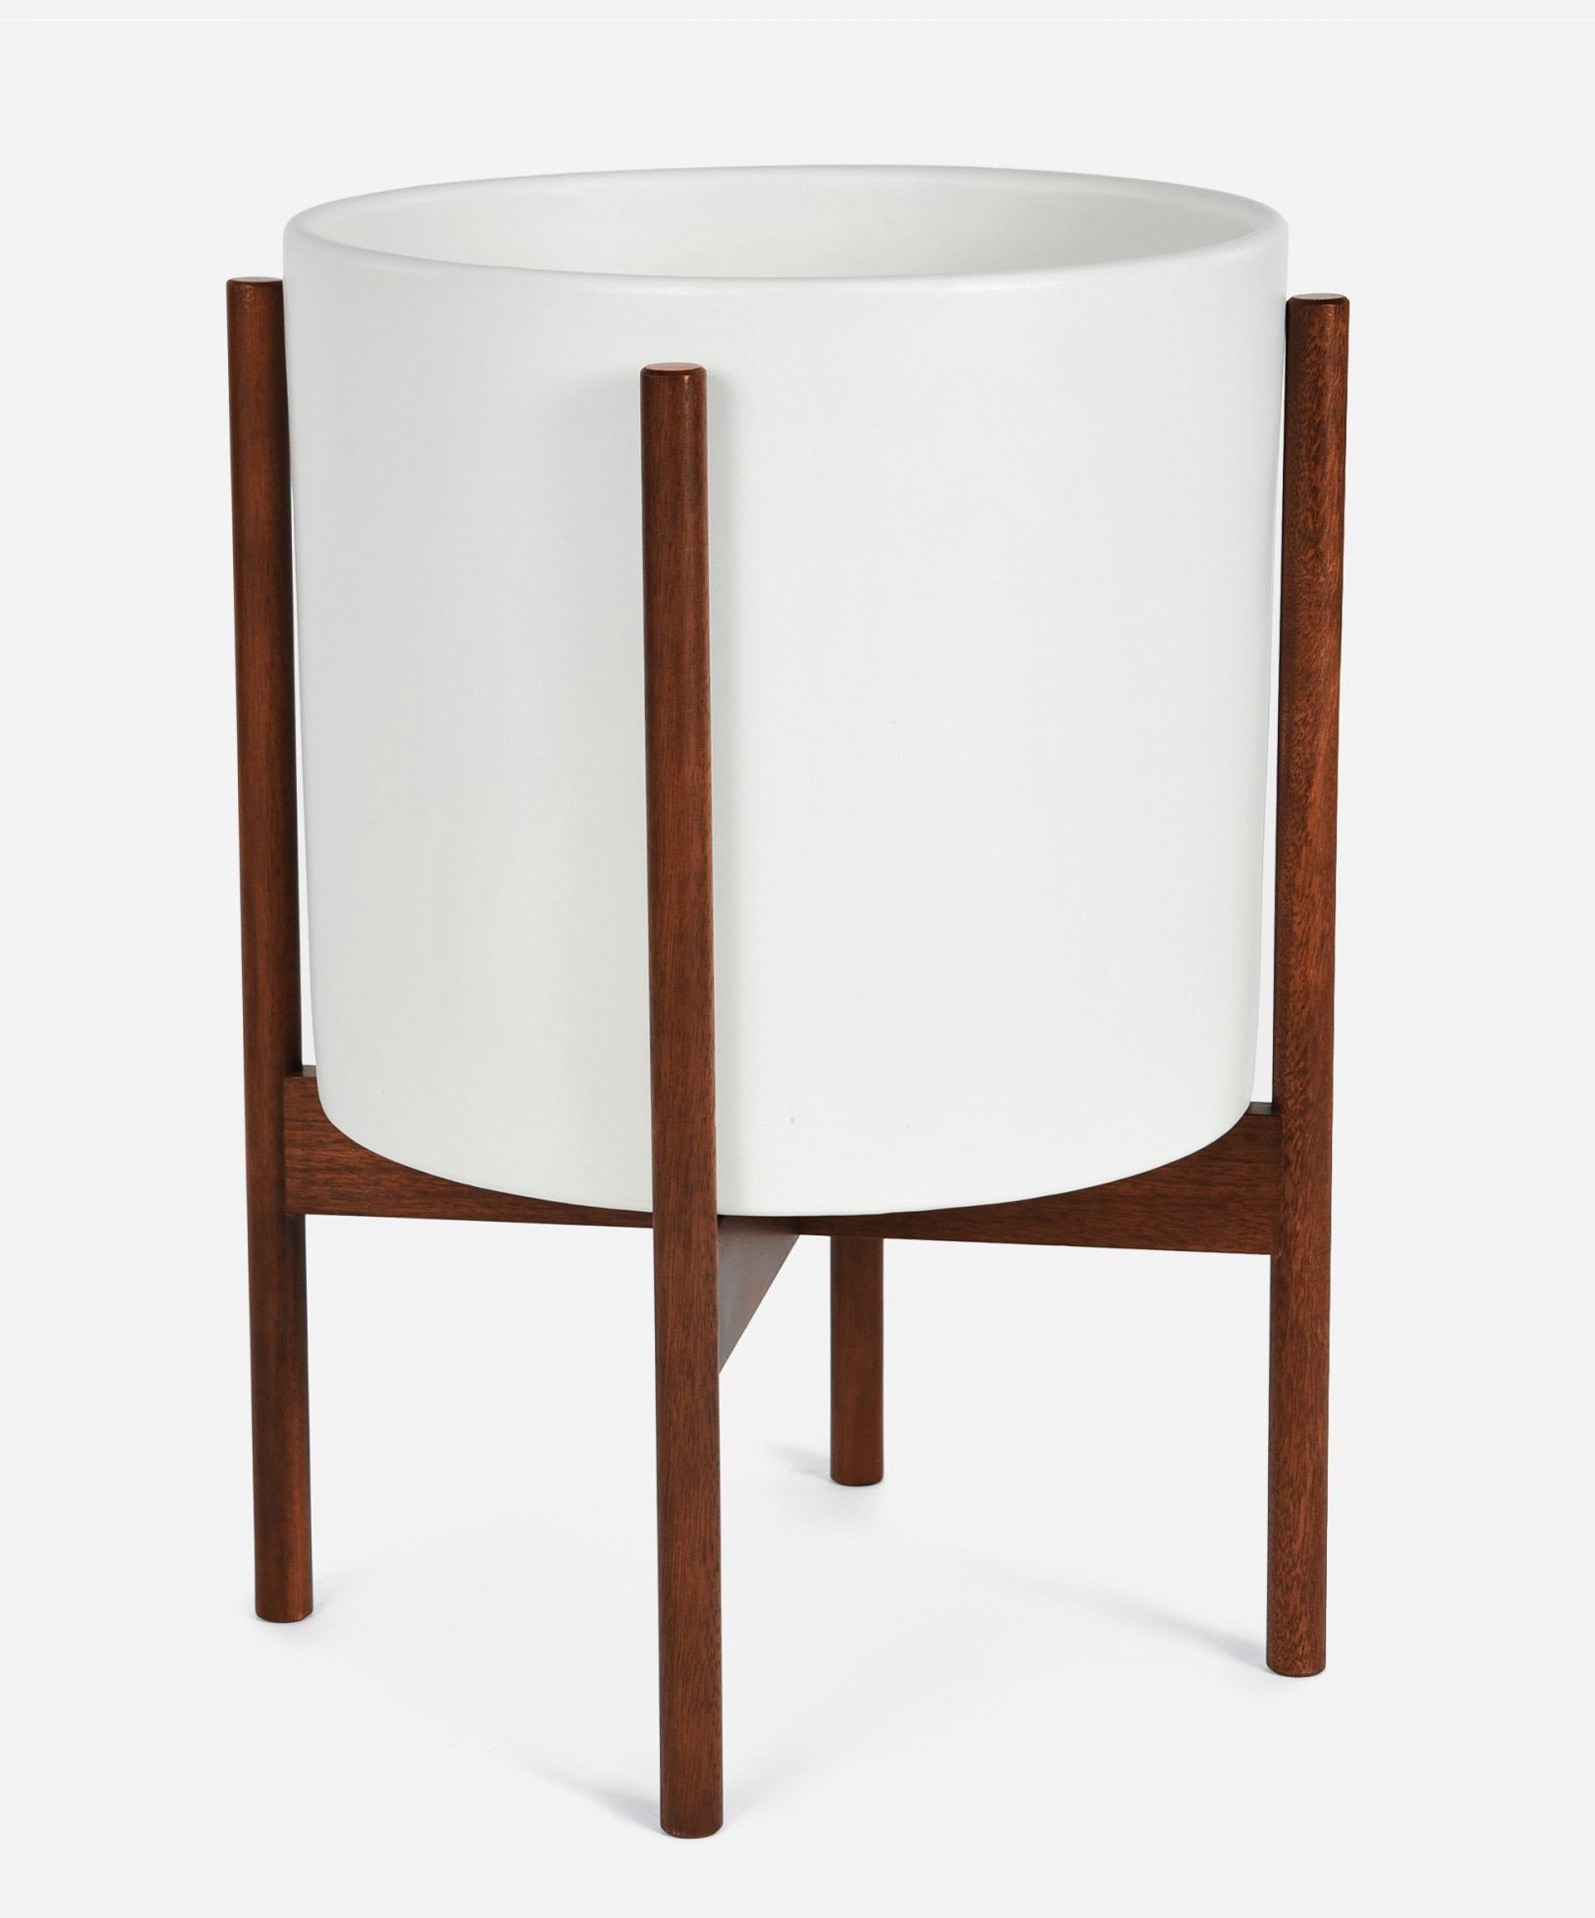 Modernica Case Study® Ceramics Large Cylinder With Stand (Planter)